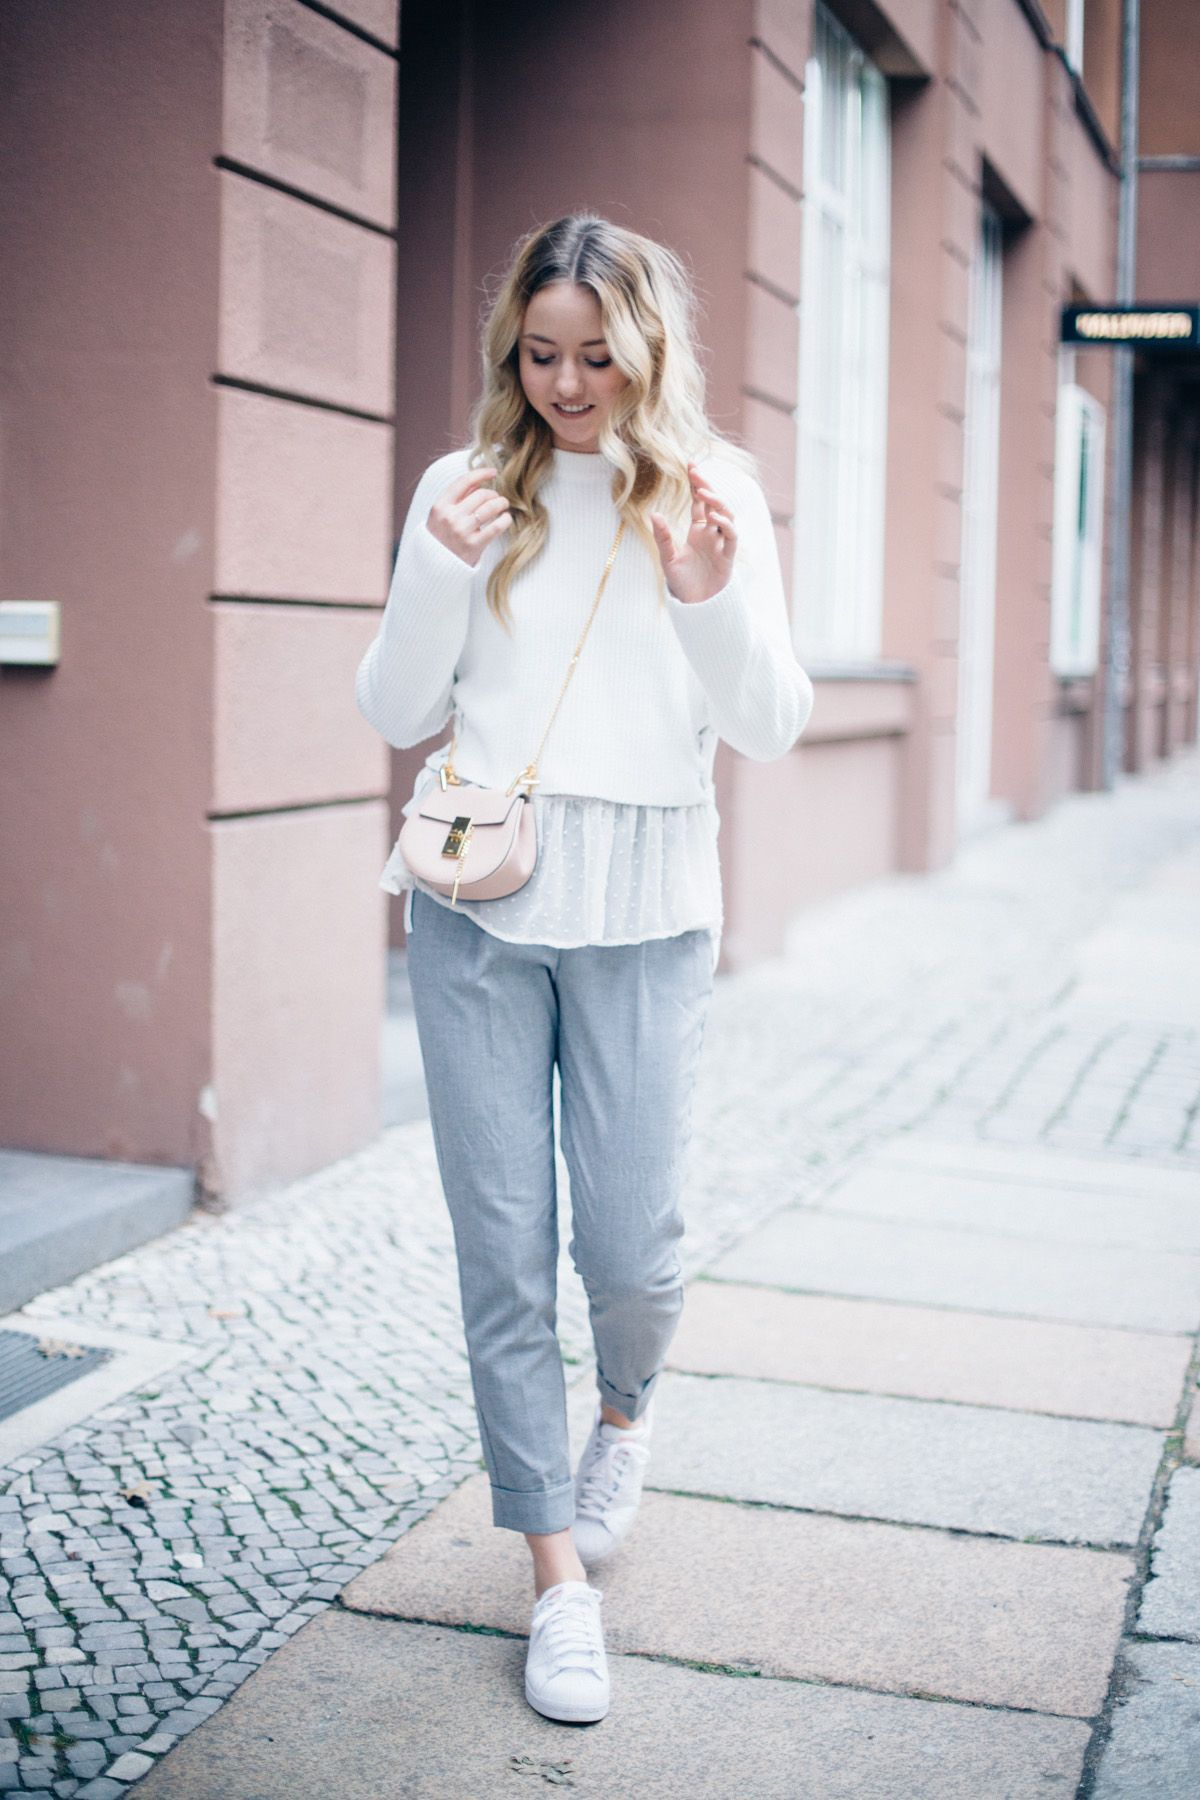 Outfit Chloe Drew Bag The Limits Of Control Outfits Chloe Drew Bag Blogger Outfits Jesse is a civilian turned director turned crazy super powerful person. pinterest